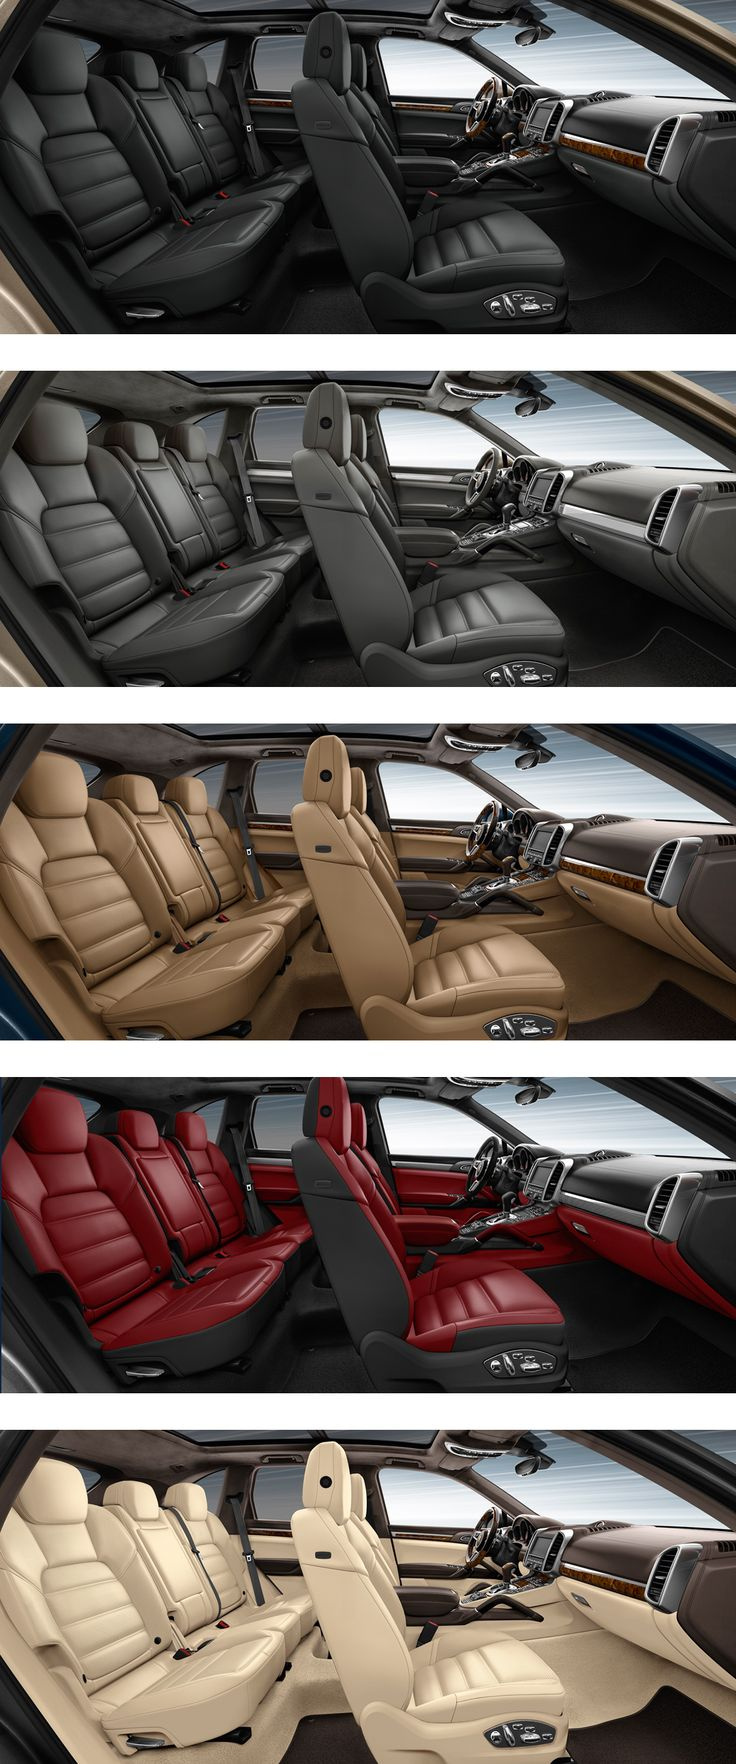 #PorscheCayenne interior ambience: The palette of colours and finishes ranges from elegant to sporty, and includes a selection of fine woods, aluminium and carbon. Learn more: http://link.porsche.com/cayenne?pc=92AAXPINGA Combined fuel consumption in accordance with EU 5/6: Cayenne models 11.5-6.6 l/100 km, CO2 emissions 267-173 g/km. Cayenne S E-Hybrid 3.4 l/100 km, CO2 emissions 79 g/km; Combined electricity consumption 20.8 kWh/100 km